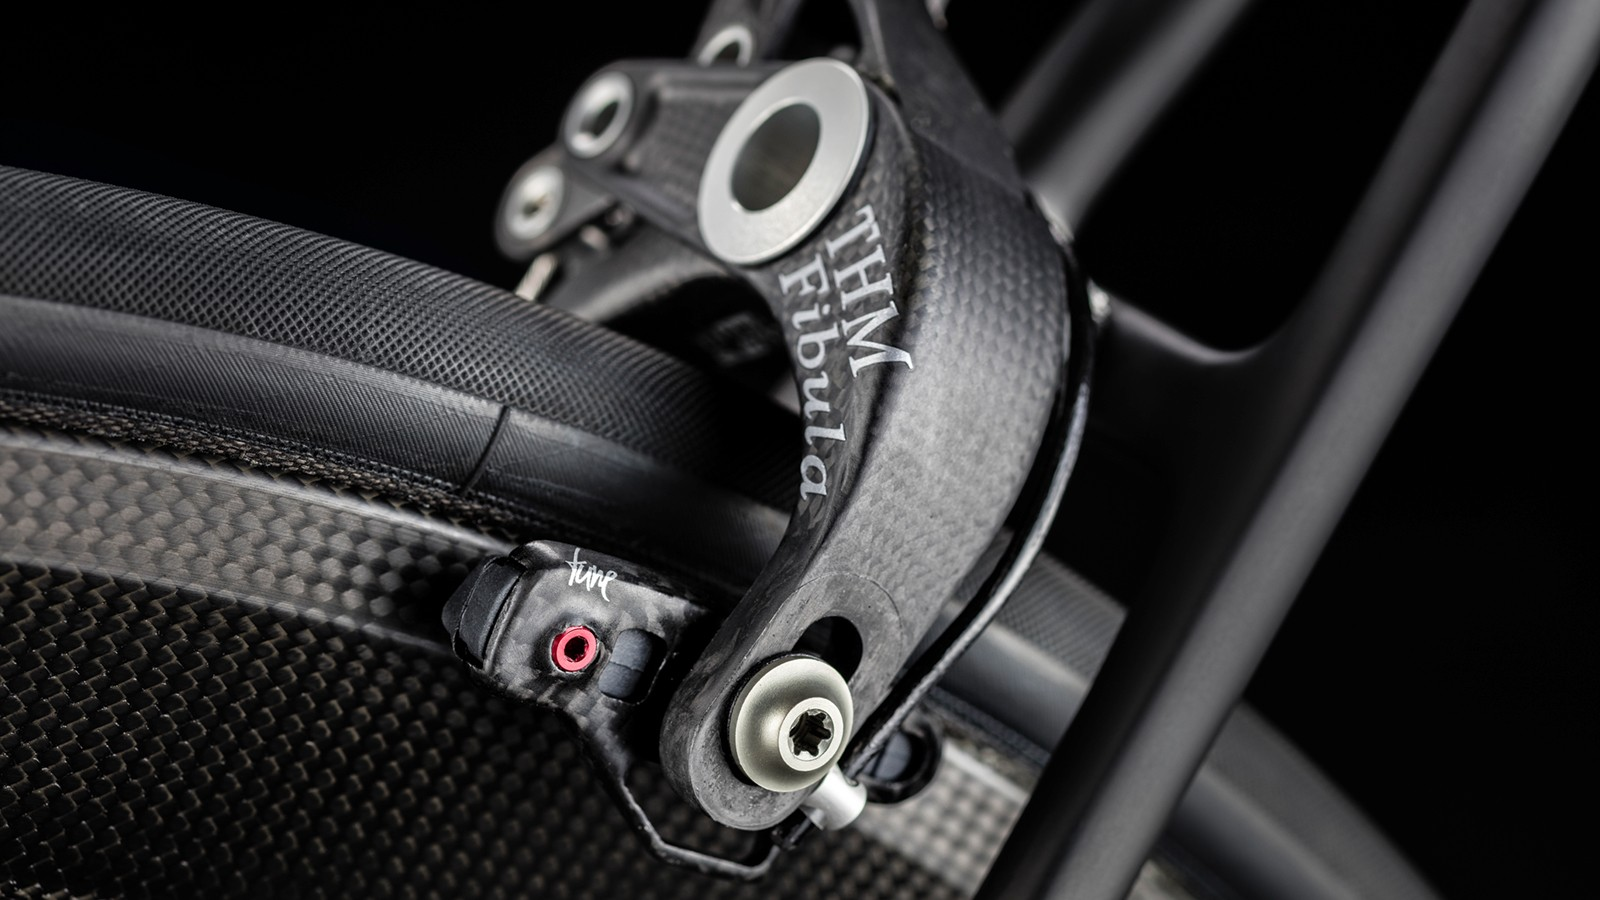 These THM FIbula brakes, matched with Tune brake shoes, are said to weigh a frankly ridiculous 120g per pair